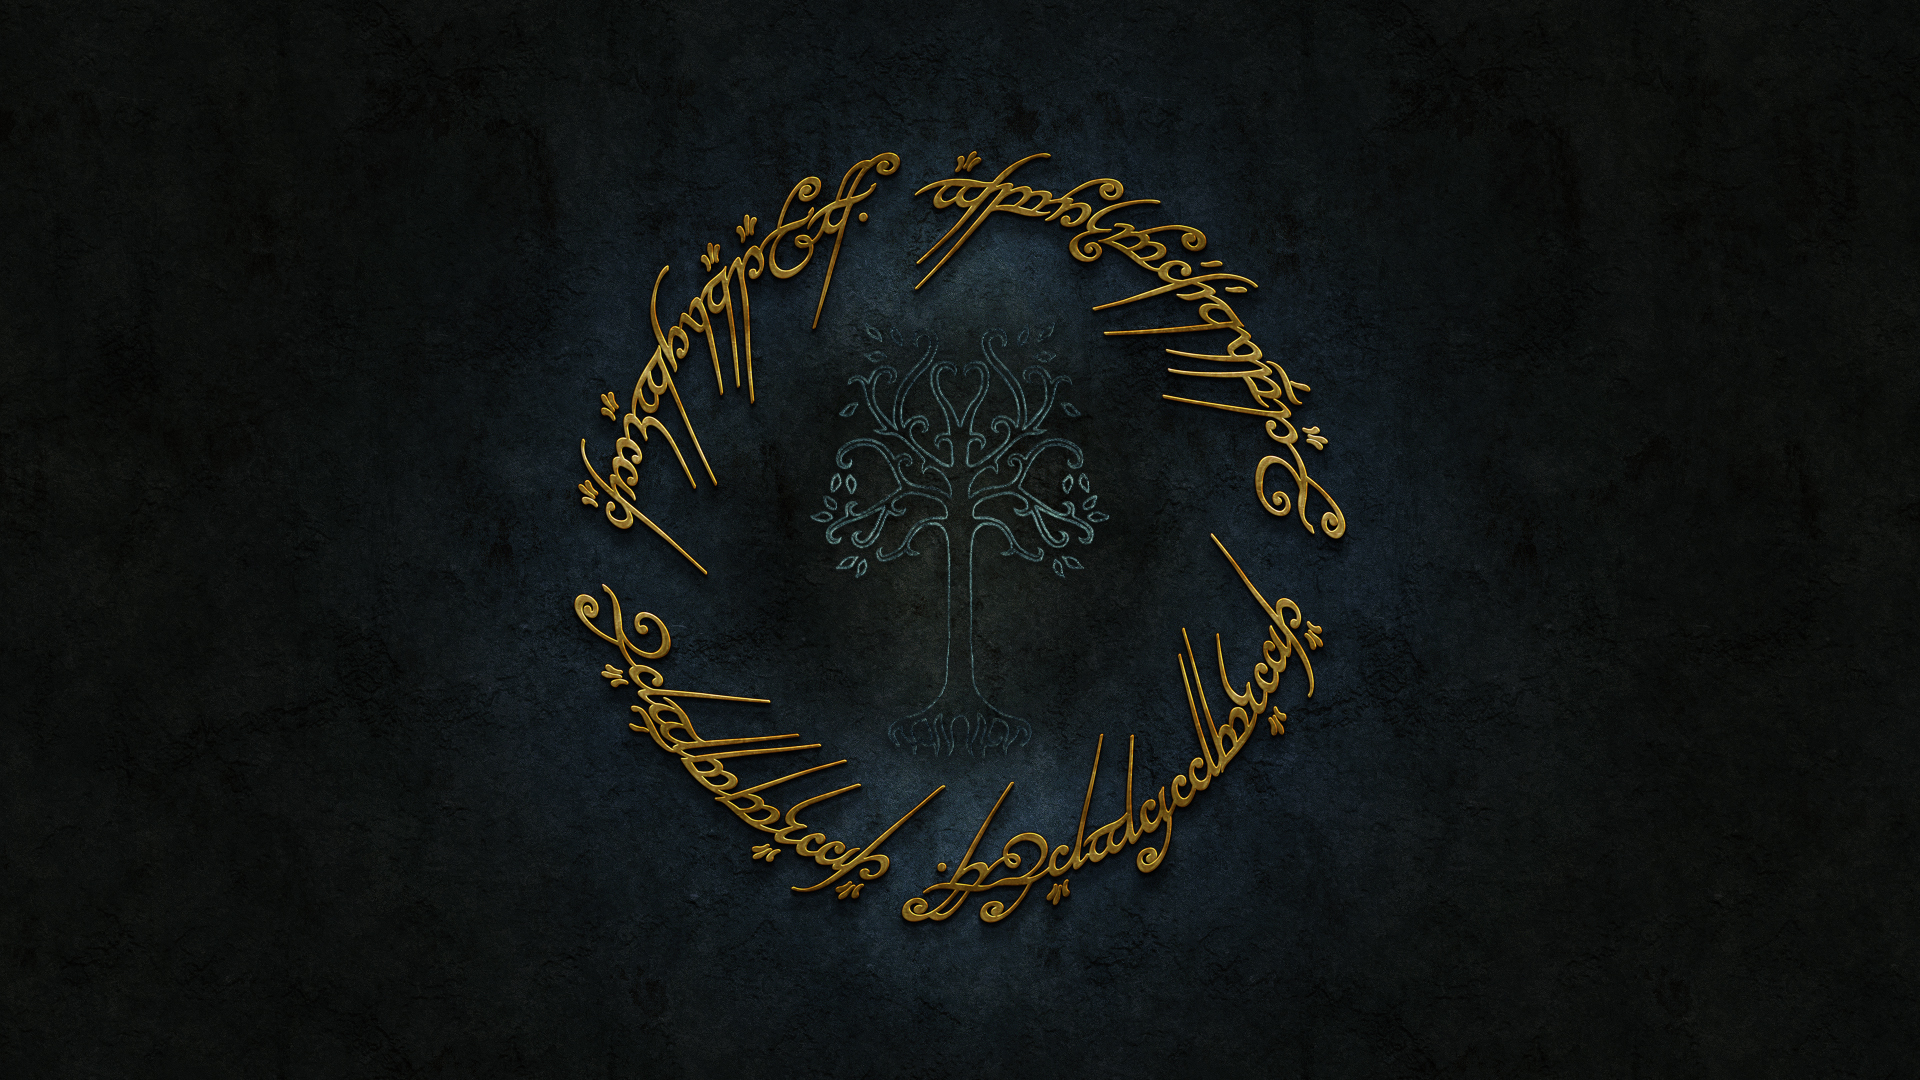 LOTR 171 Awesome Wallpapers 1920x1080